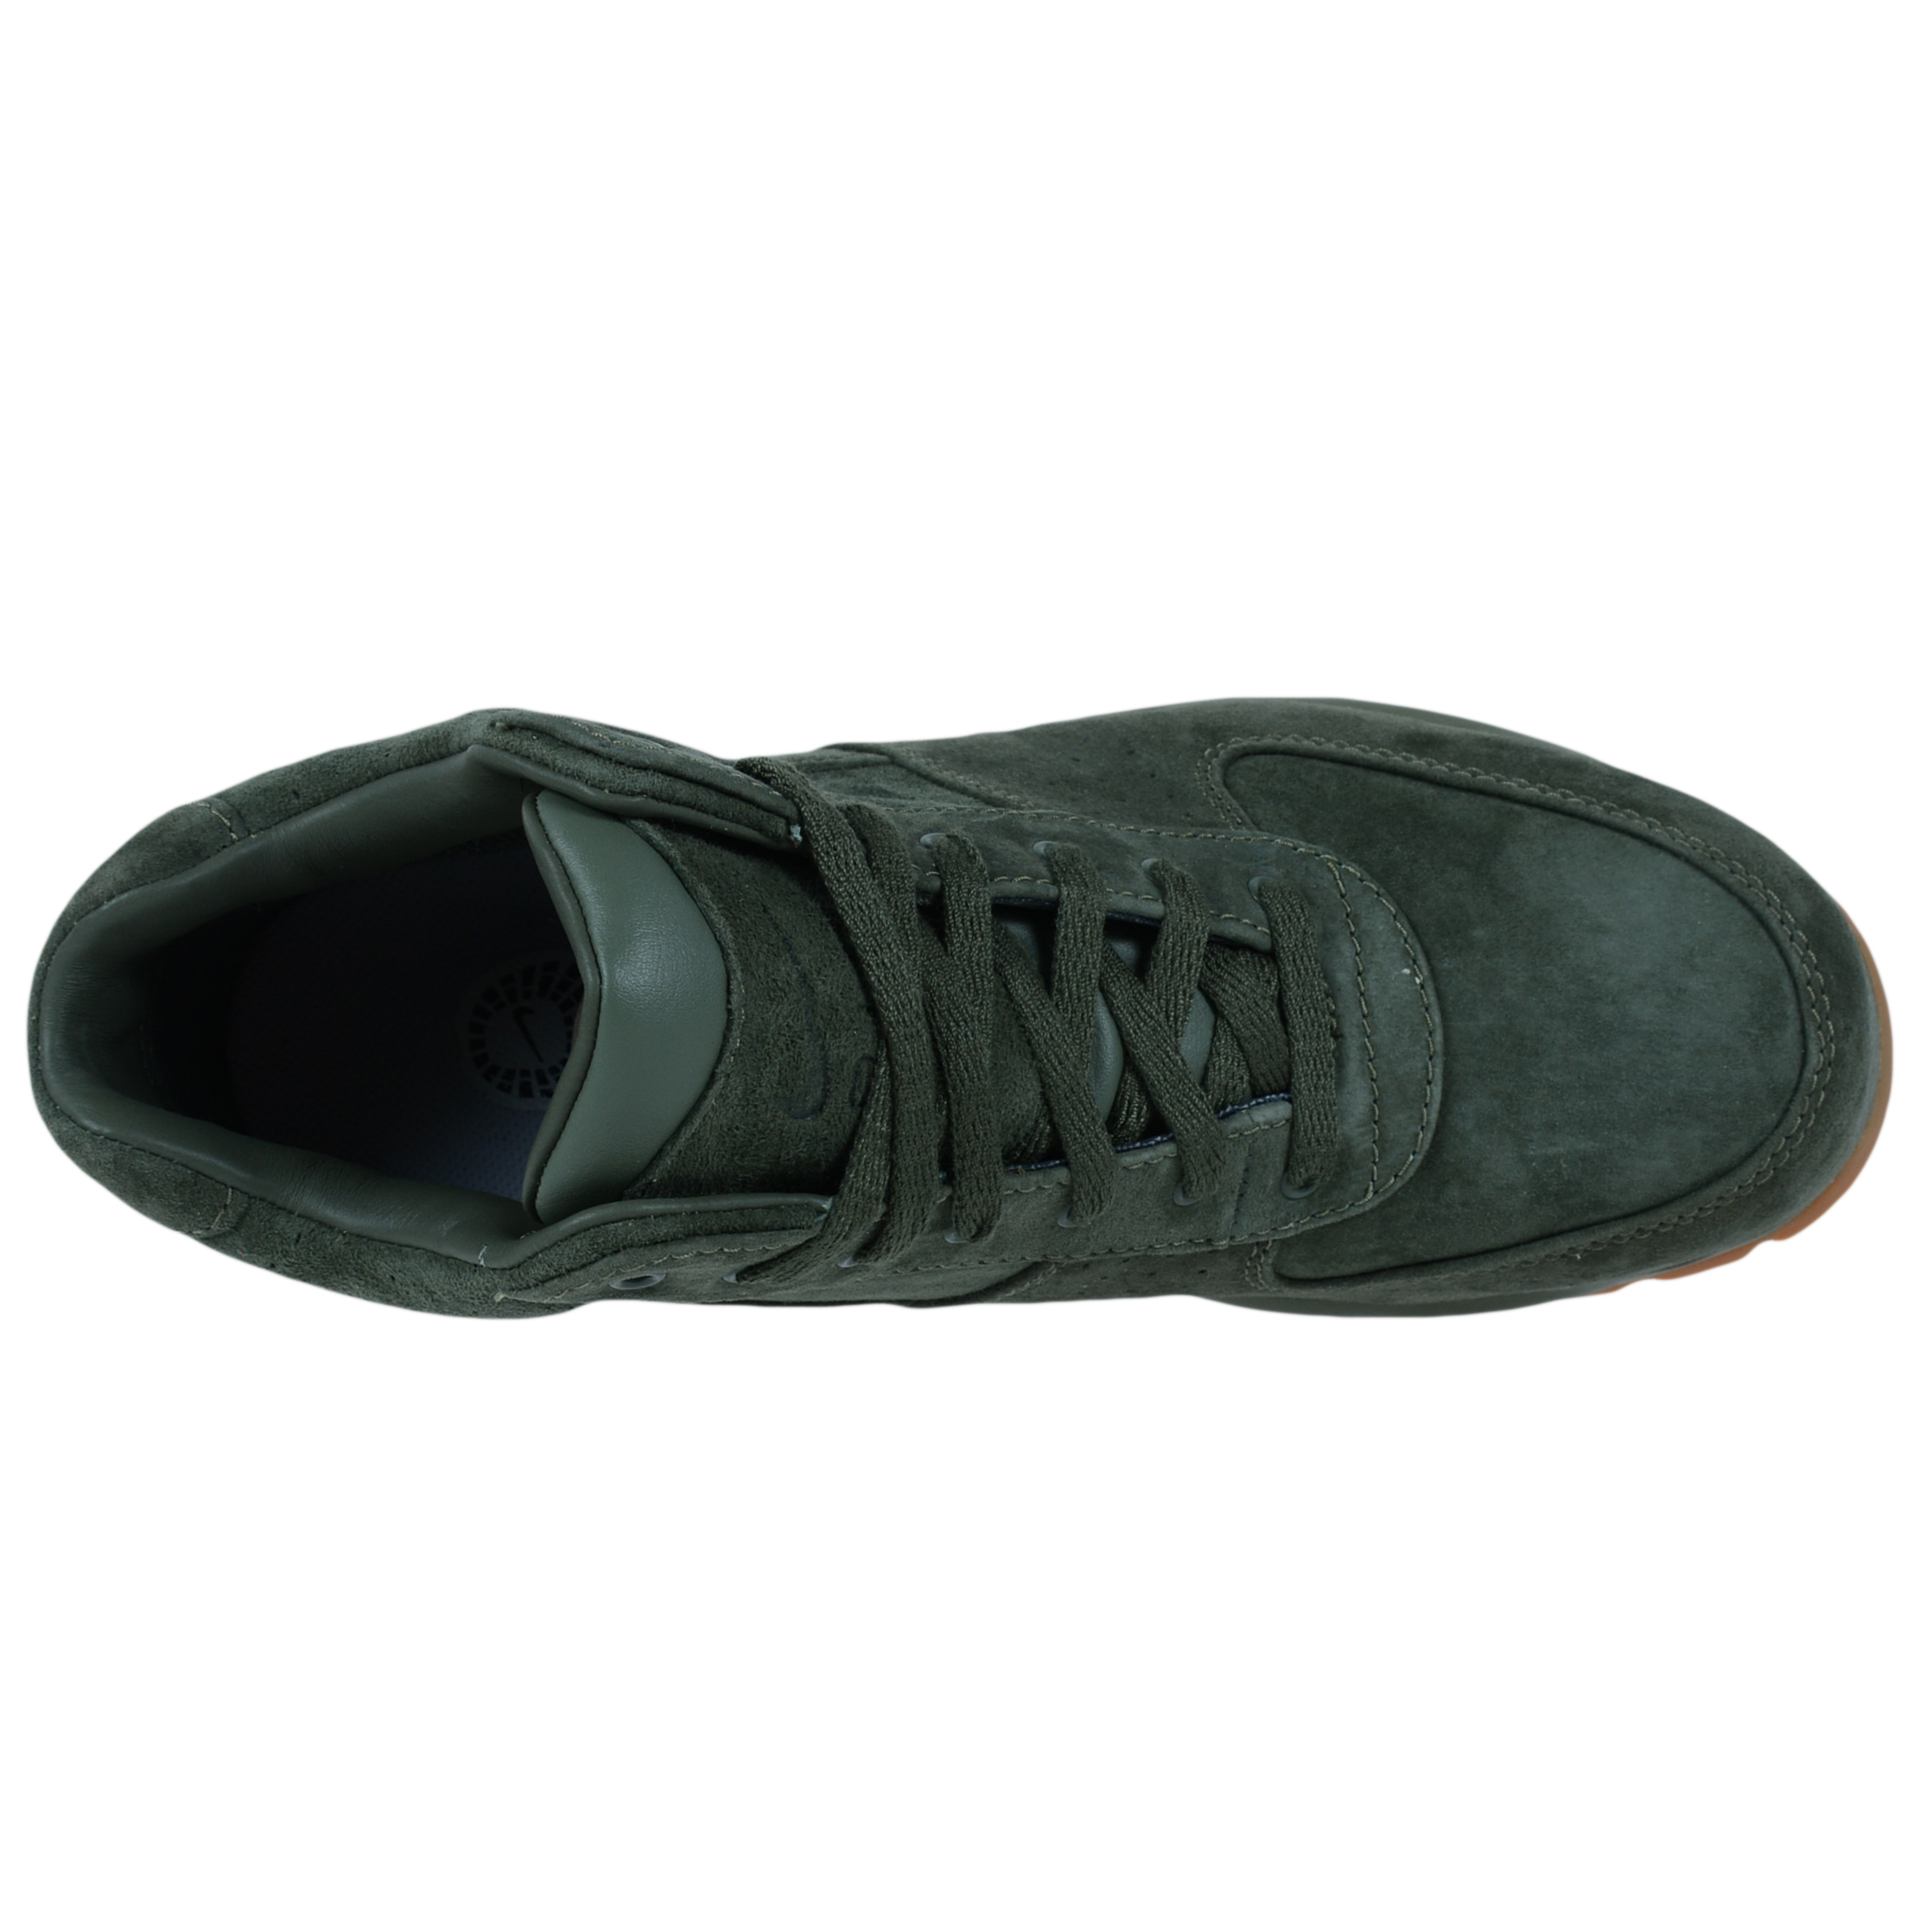 ... NIKE AIR MAX GOADOME 2013 SUEDE ACG BOOTS ARMY OLIVE ARMY OLIVE GUM  599474 300 ...